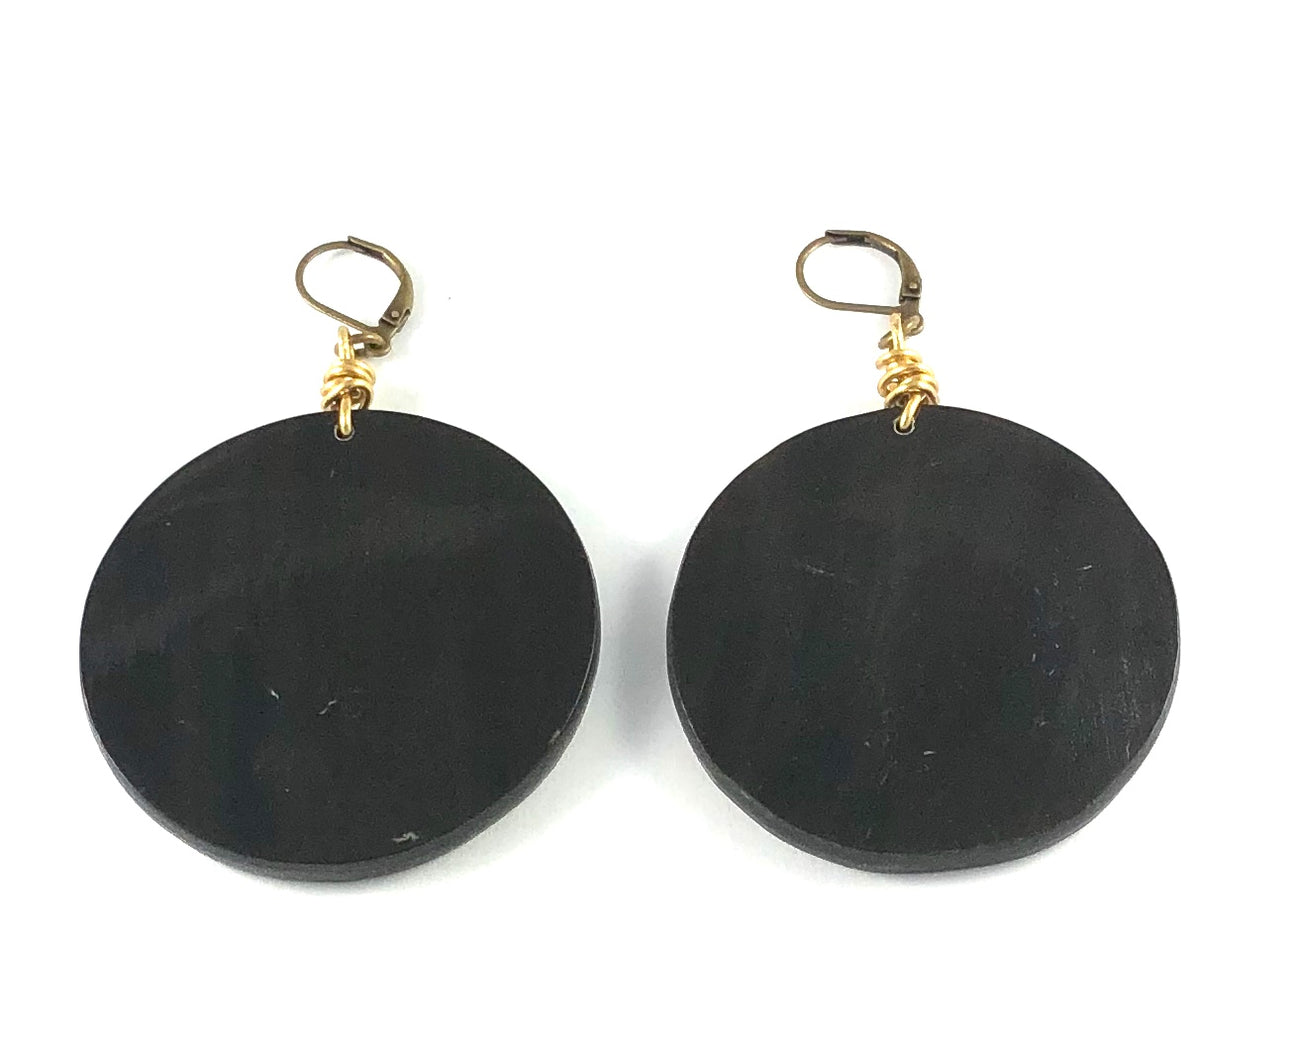 Vintage Round Horn Earrings